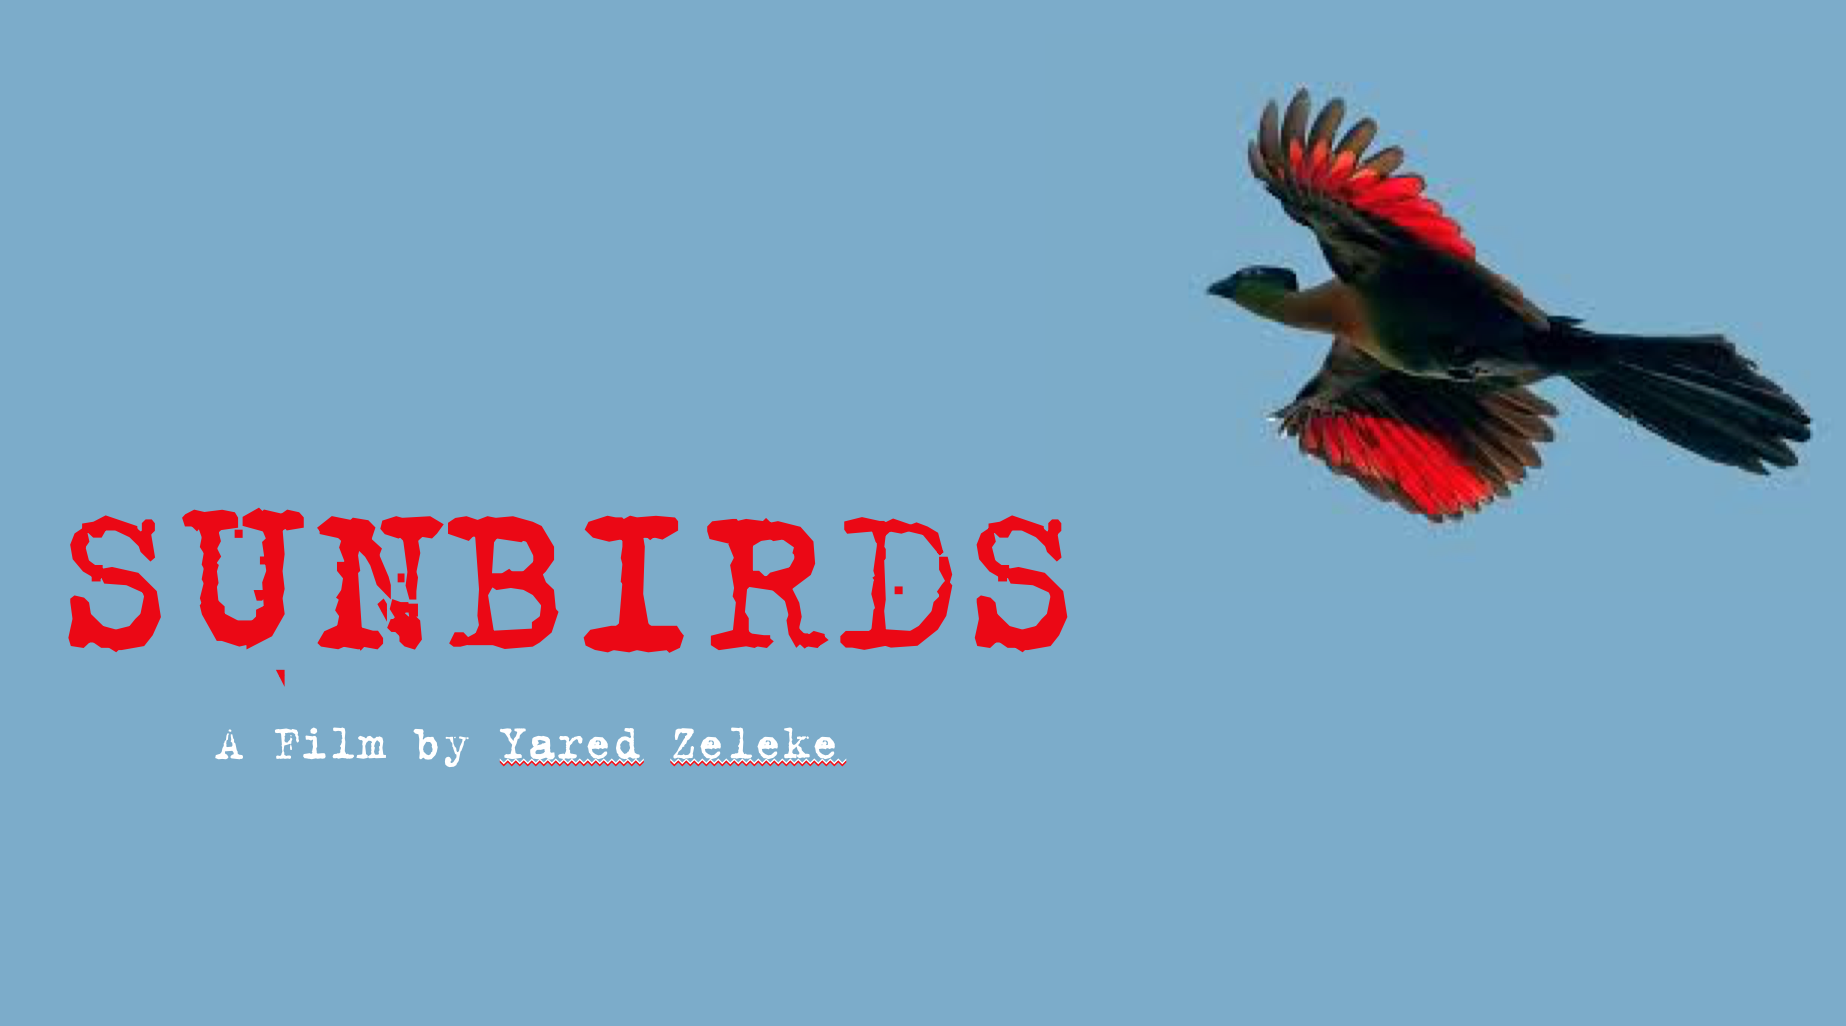 Sunbirds - A feature film in development produced by Truth Aid and directed by Yared Zeleke. This project is being supported by the San Francisco Film Society.